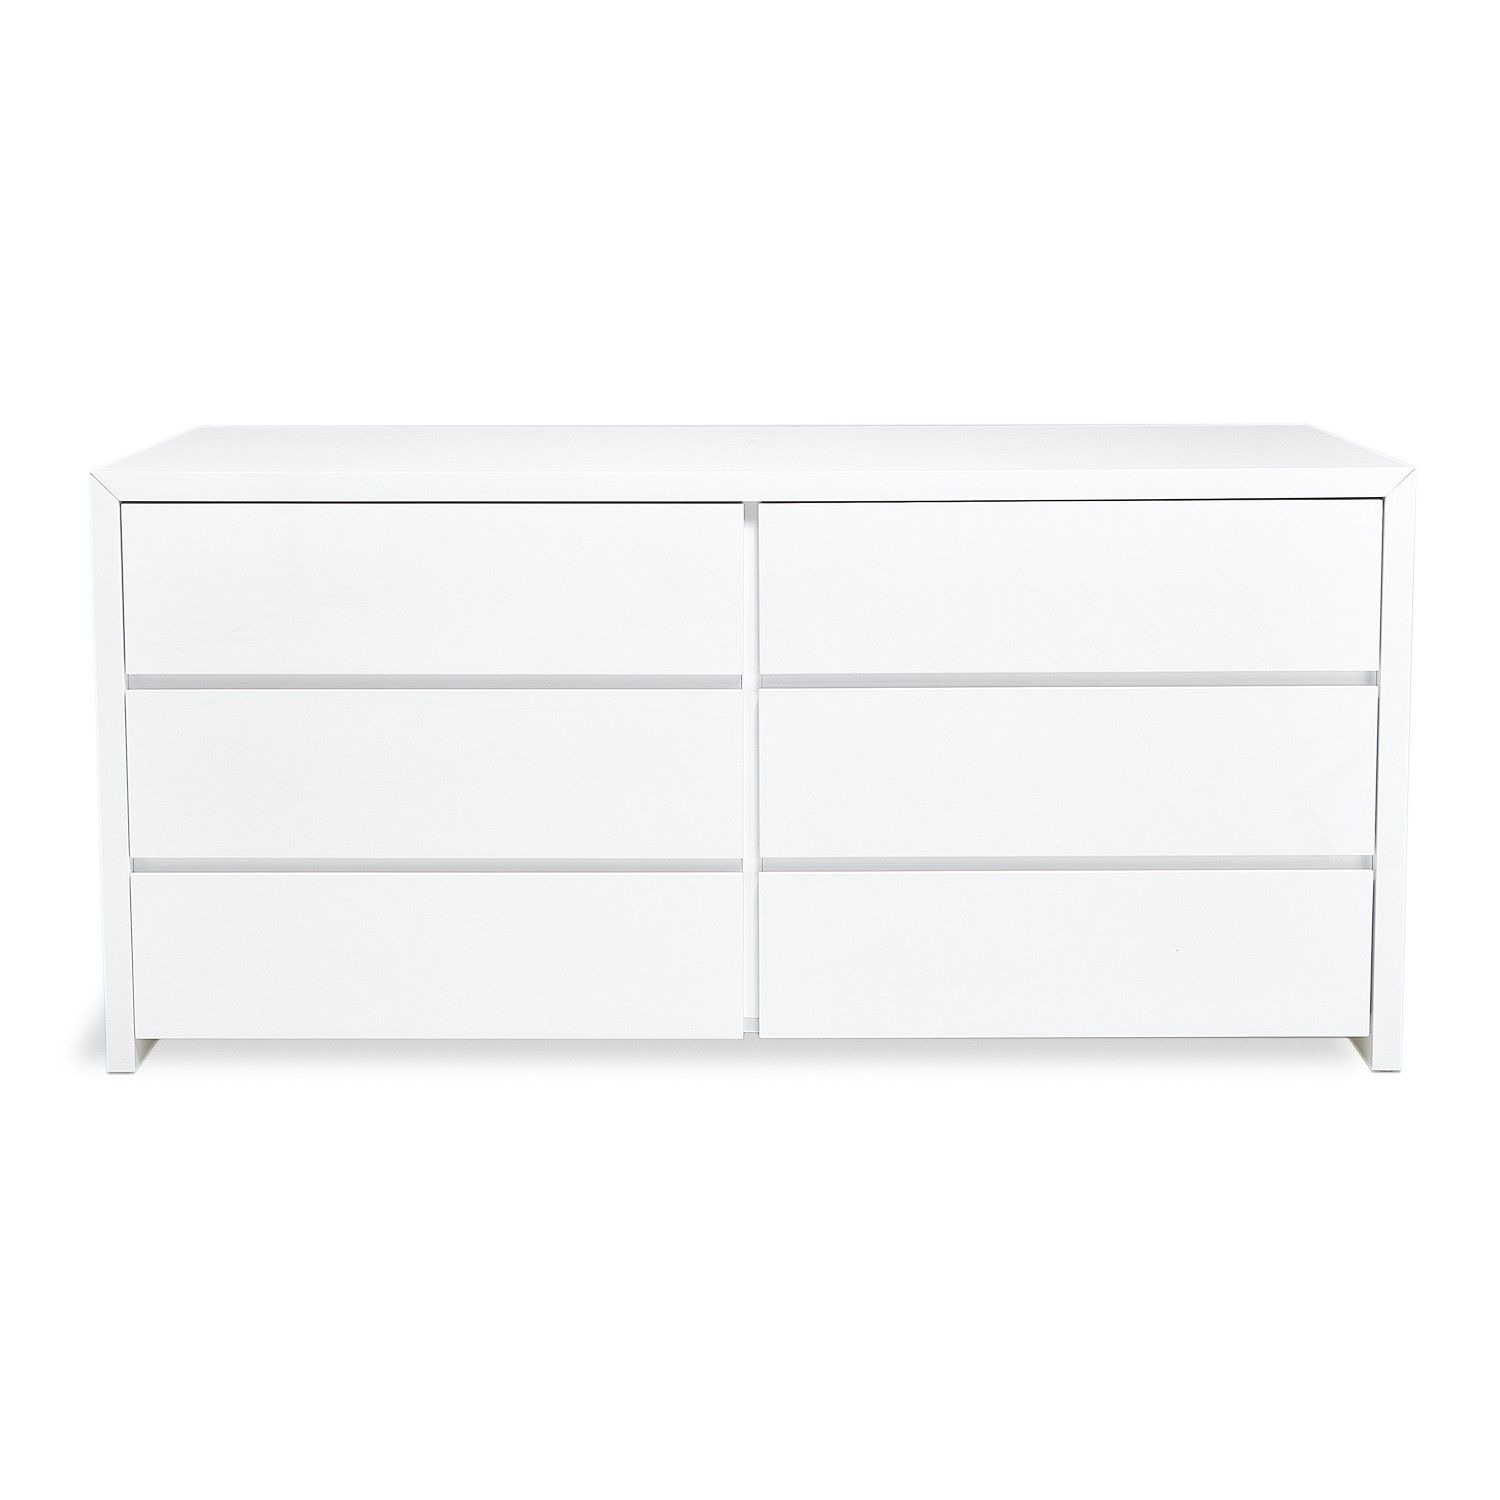 Modern Bedroom Dressers And Chests White Dresser Modern